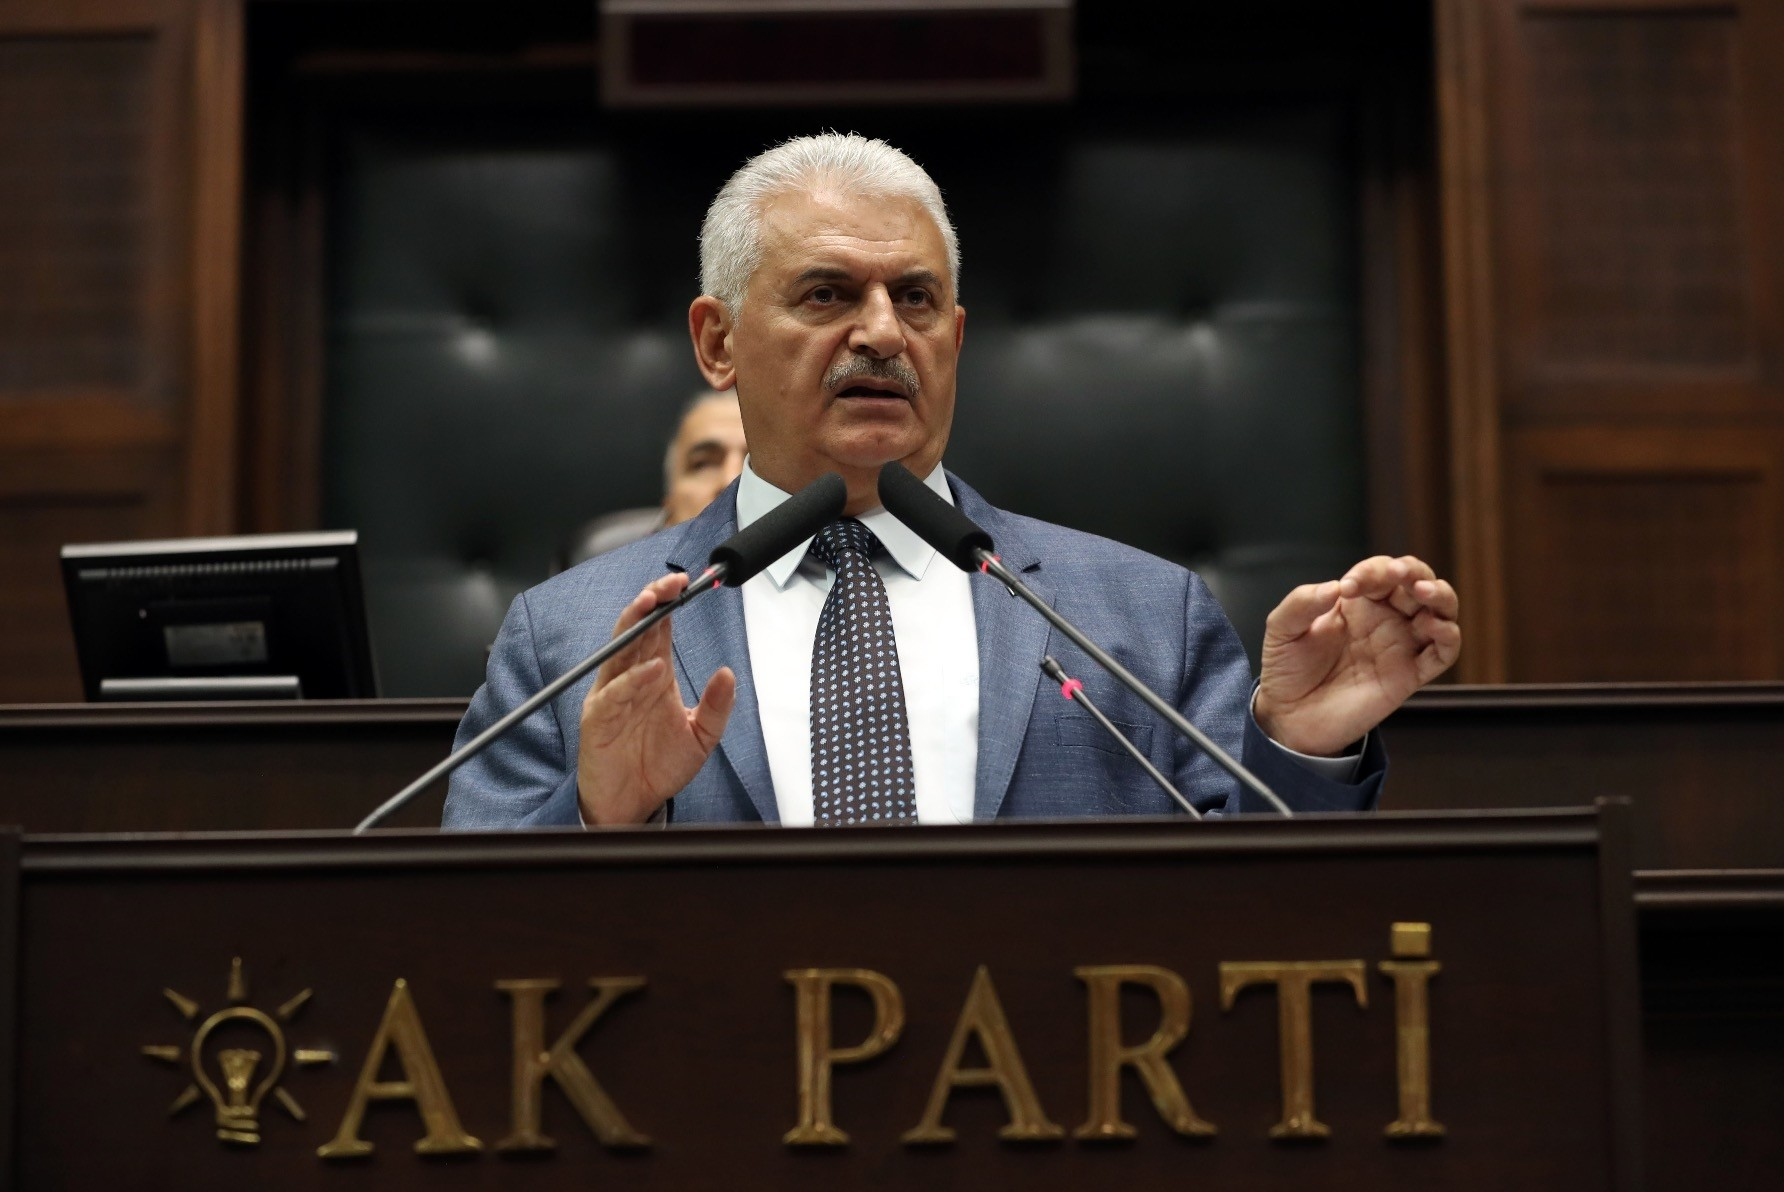 Speaking at the AK Partyu2019s weekly parliamentary group meeting, Prime Minister Yu0131ldu0131ru0131m said opposition CHP leader Ku0131lu0131u00e7darou011flu lost control after he called the July 15 putsch u201ca controlled coupu201d attempt.